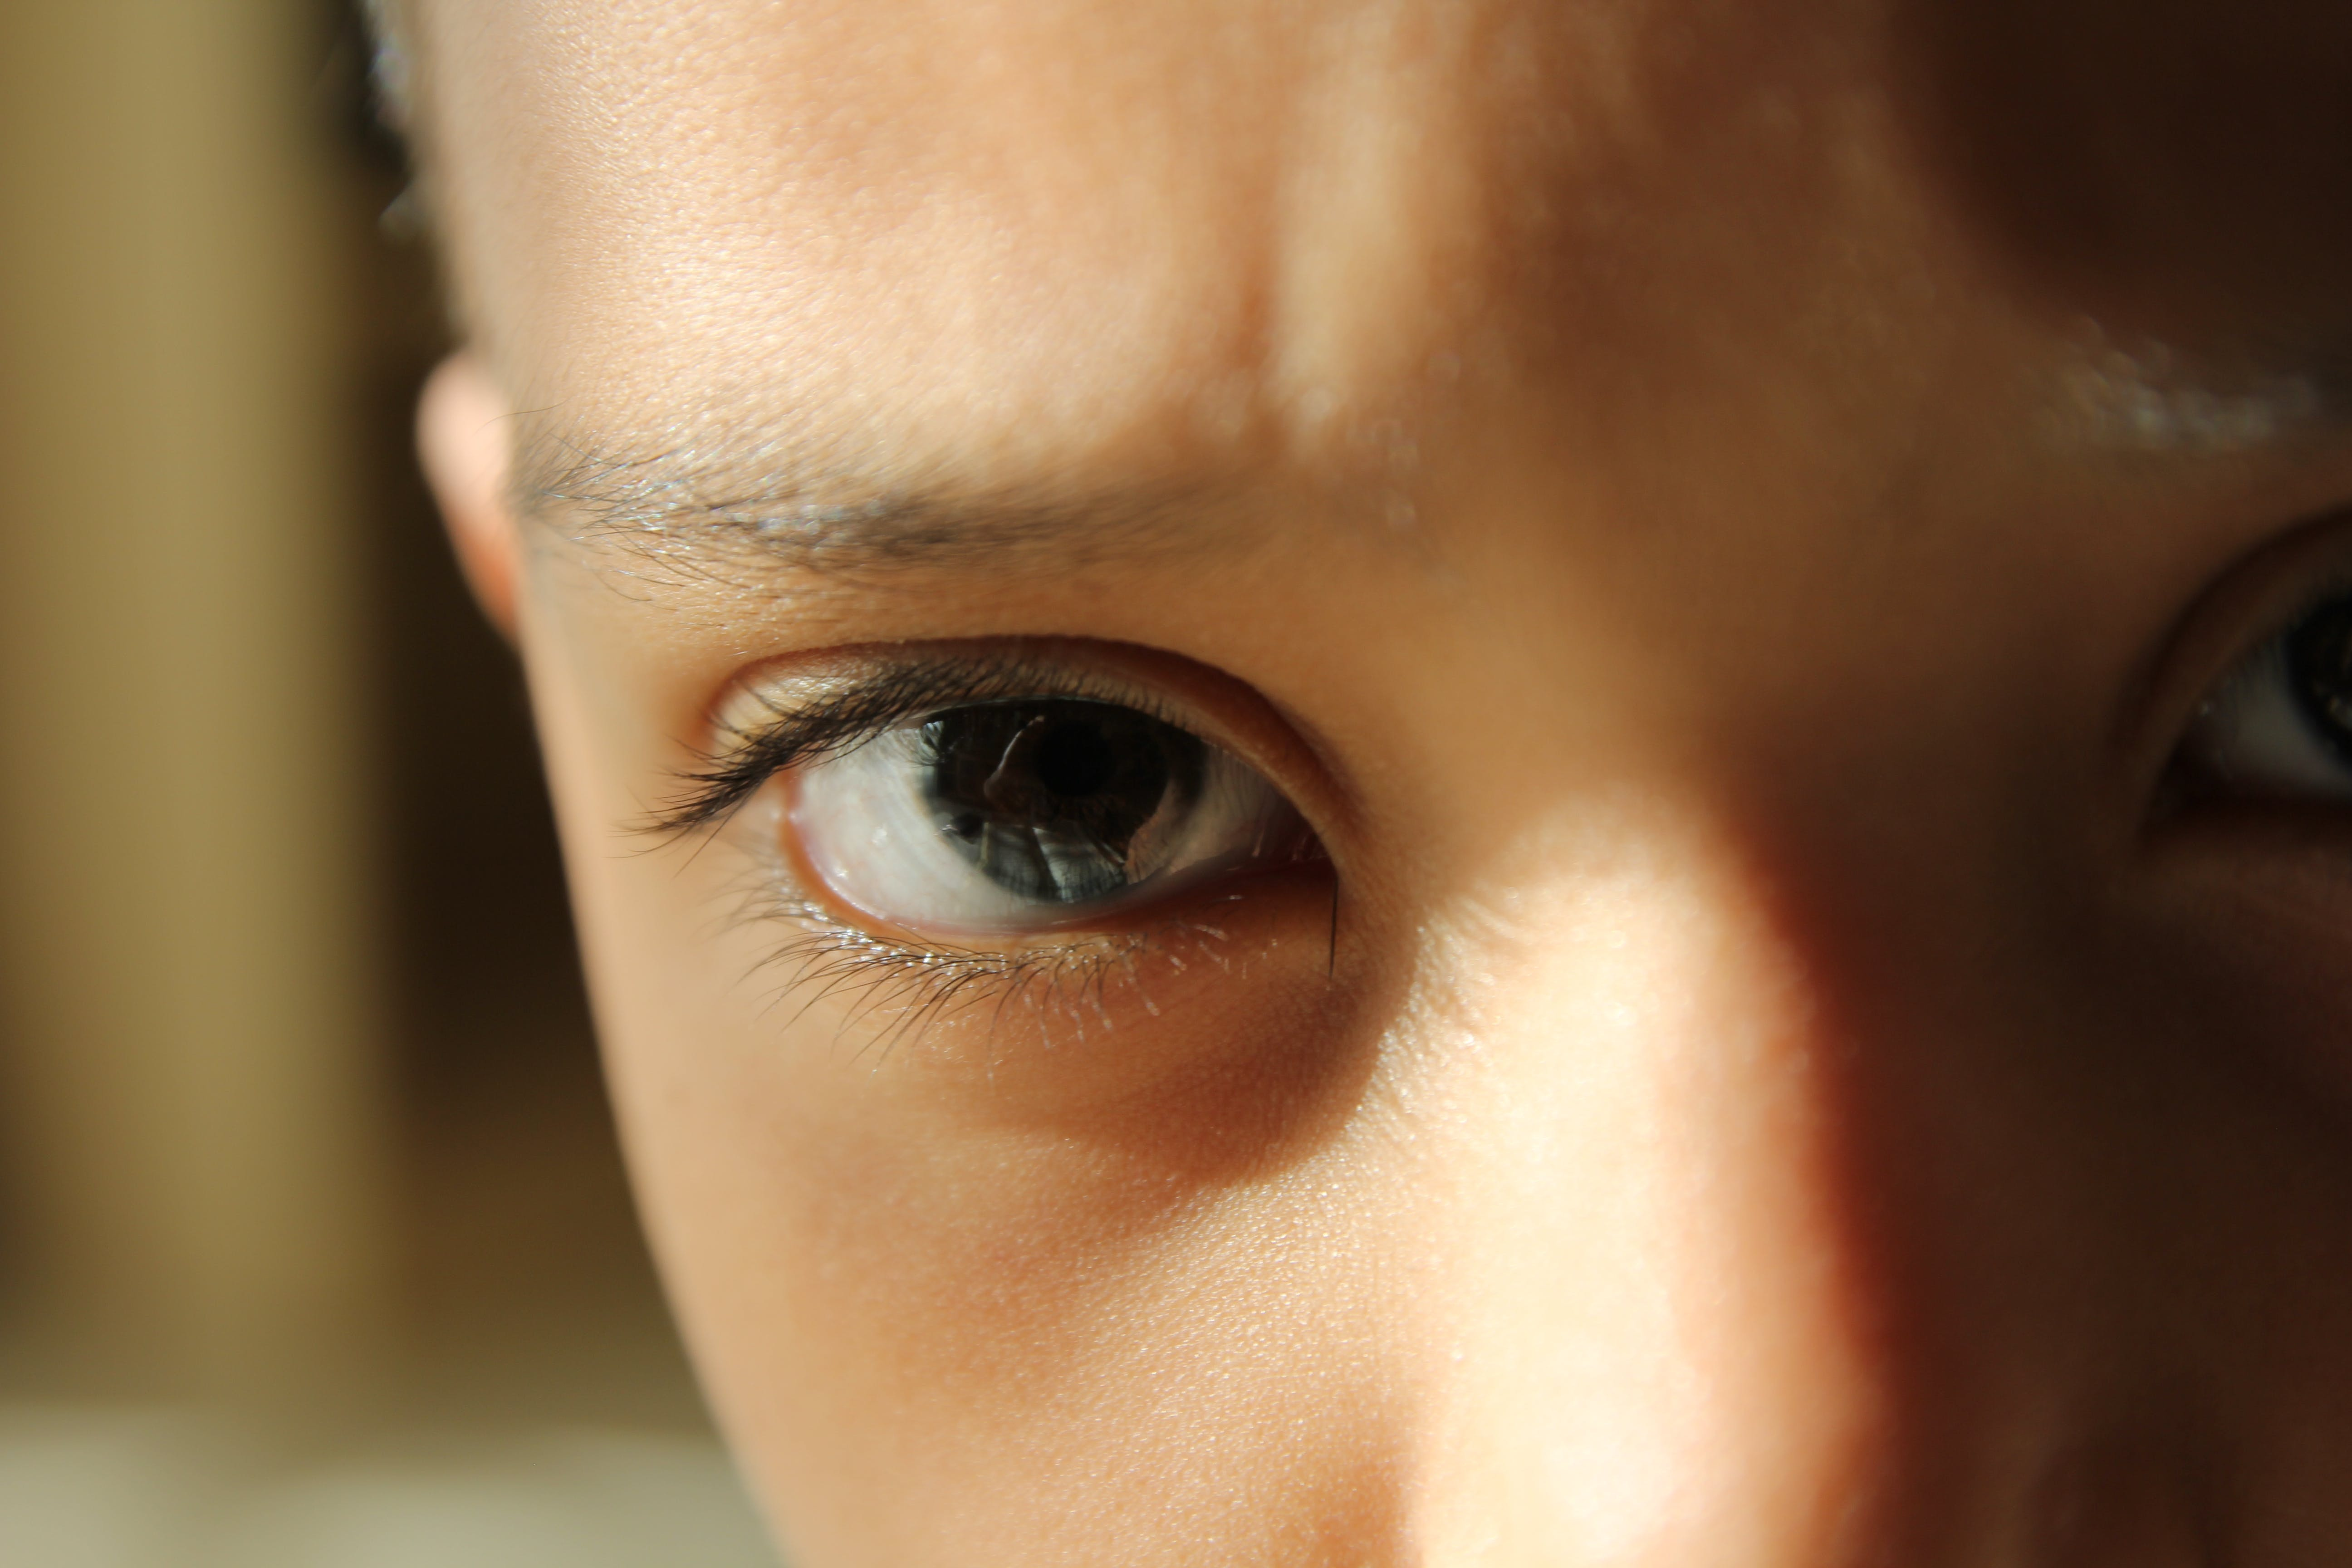 Close-Up Photo of Kid's Eye